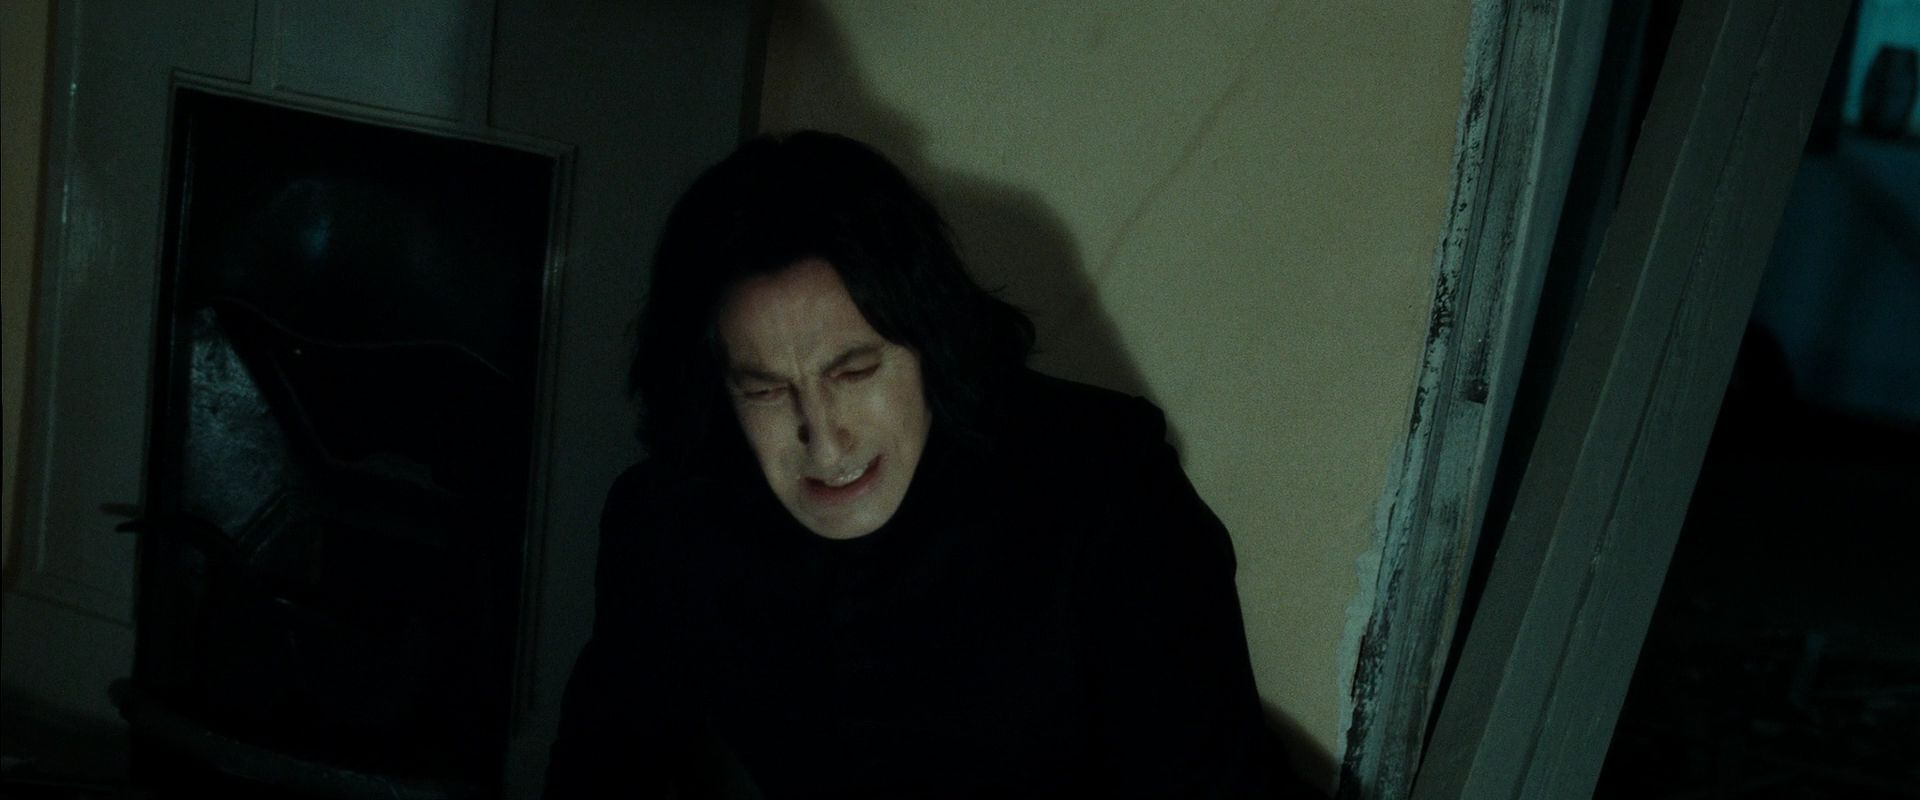 harry potter essays snape I got an essay from snape and hermiones said to look in the poitions section in  the libary and i cant find it ive looked every where and cant find it.